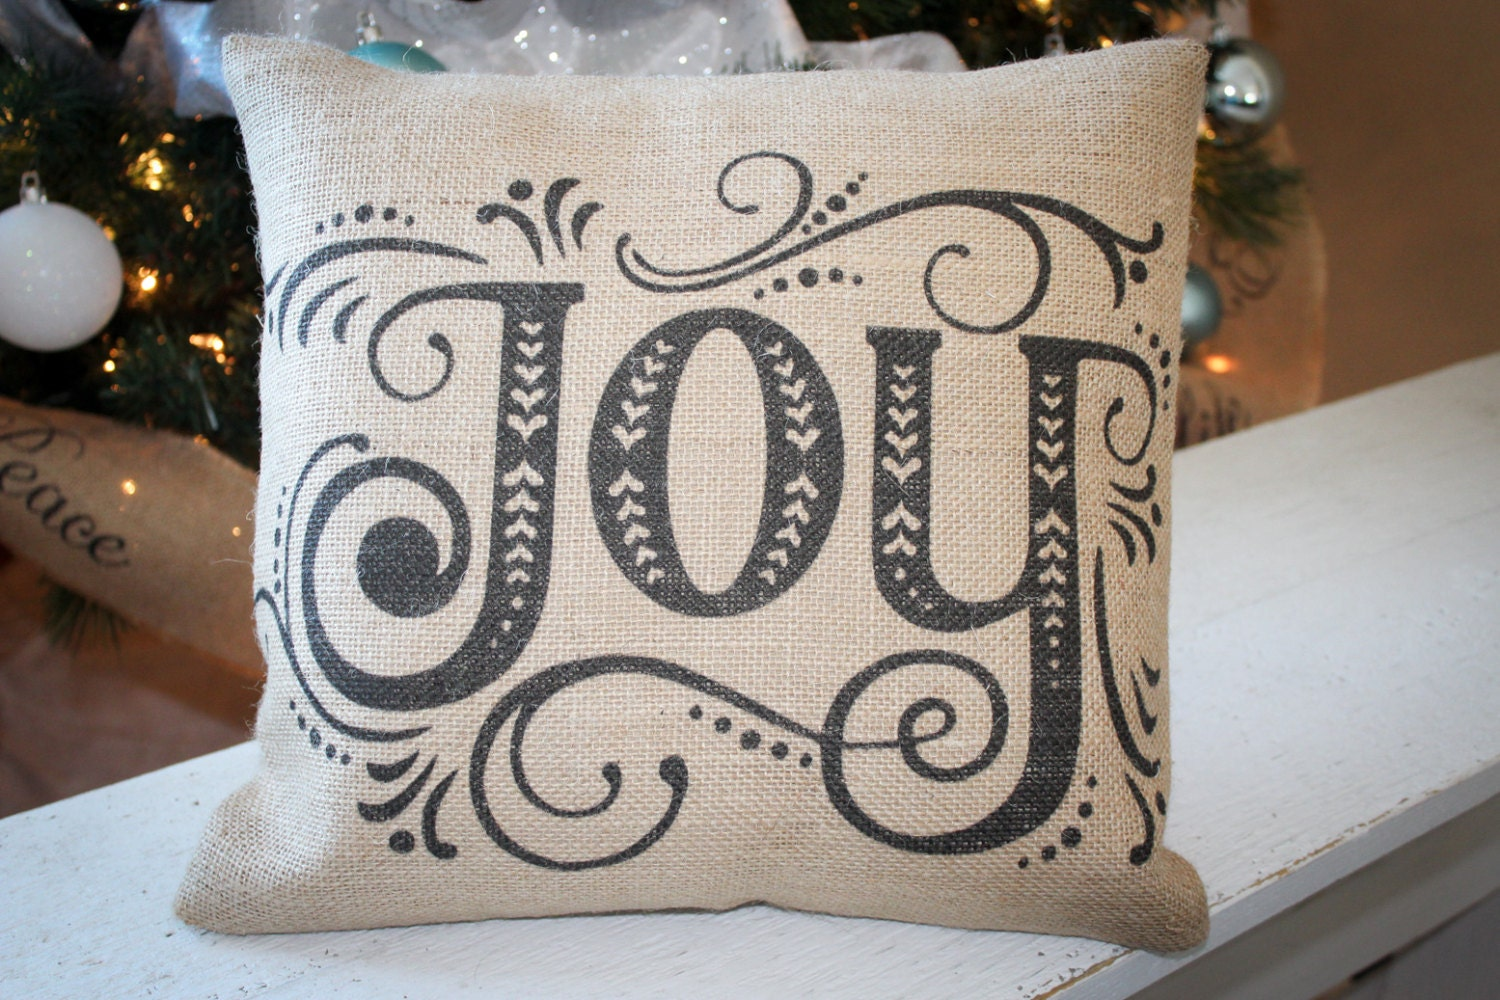 Scandinavian Design Throw Pillows : Scandinavian style Joy Christmas throw pillow - festive holiday home decor